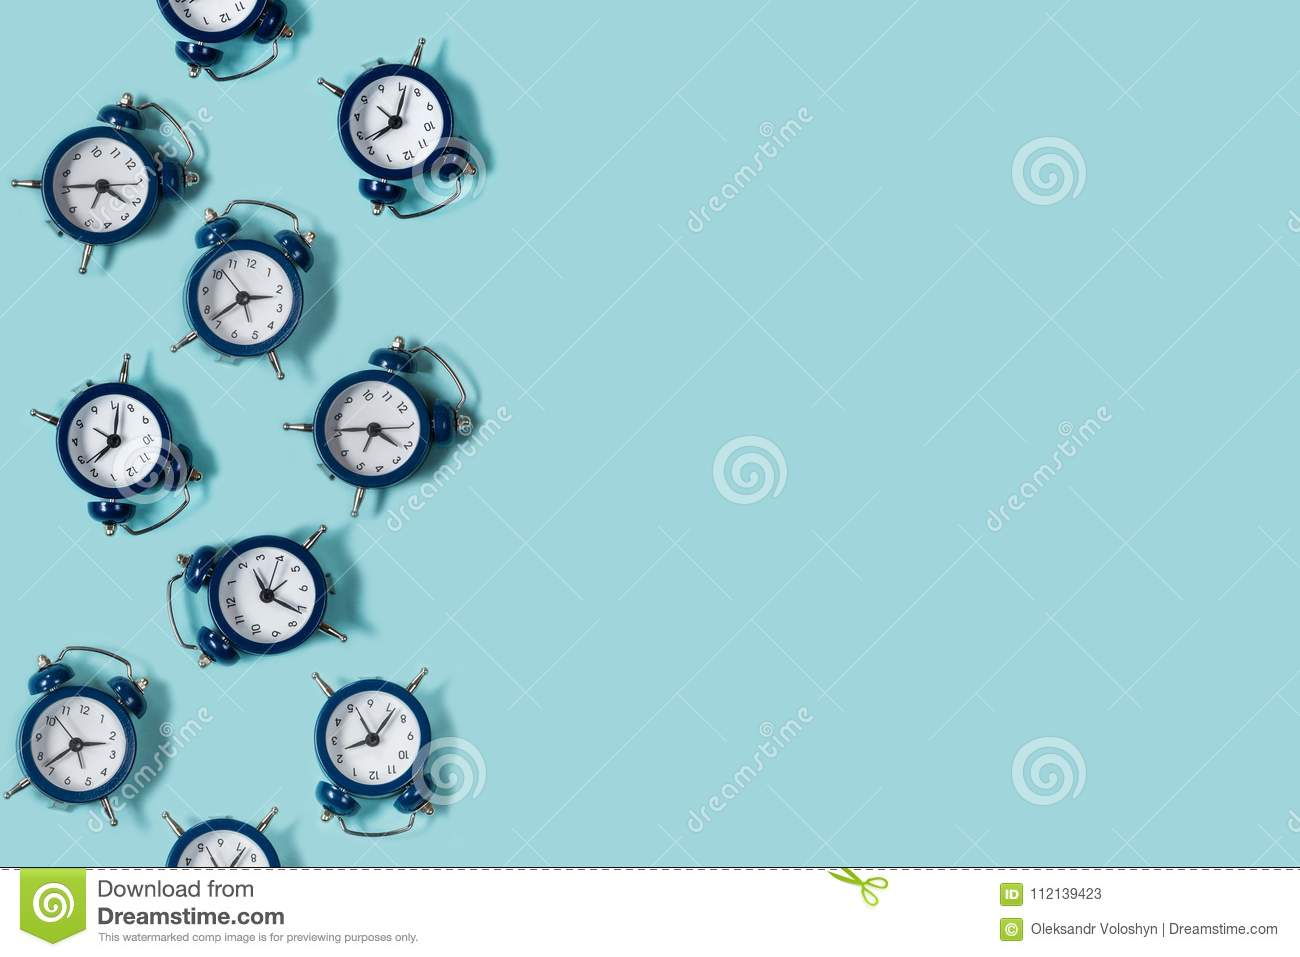 Flat lay retro beautiful new alarm clock on blue color background. Pattern.